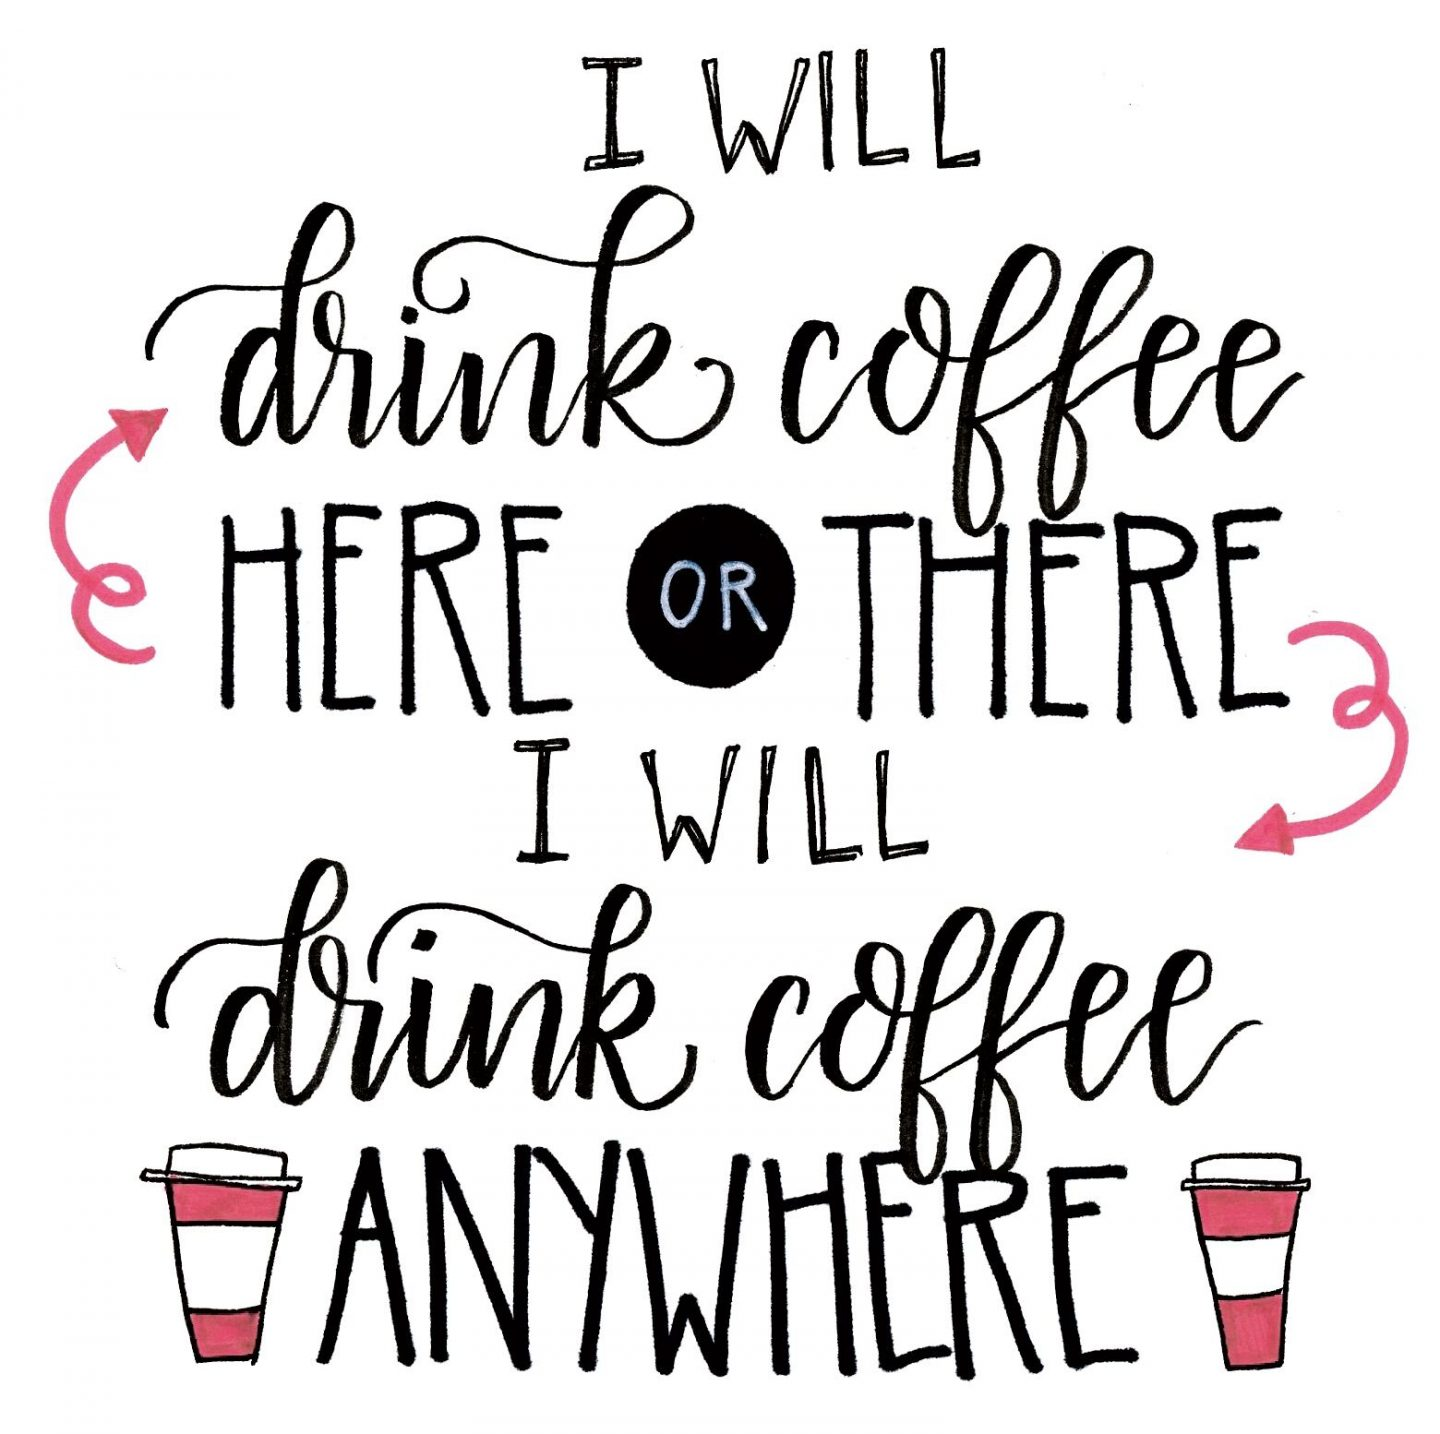 Funny handlettered quote about drinking coffee from Amy Latta. #coffee #humor #funnyquote